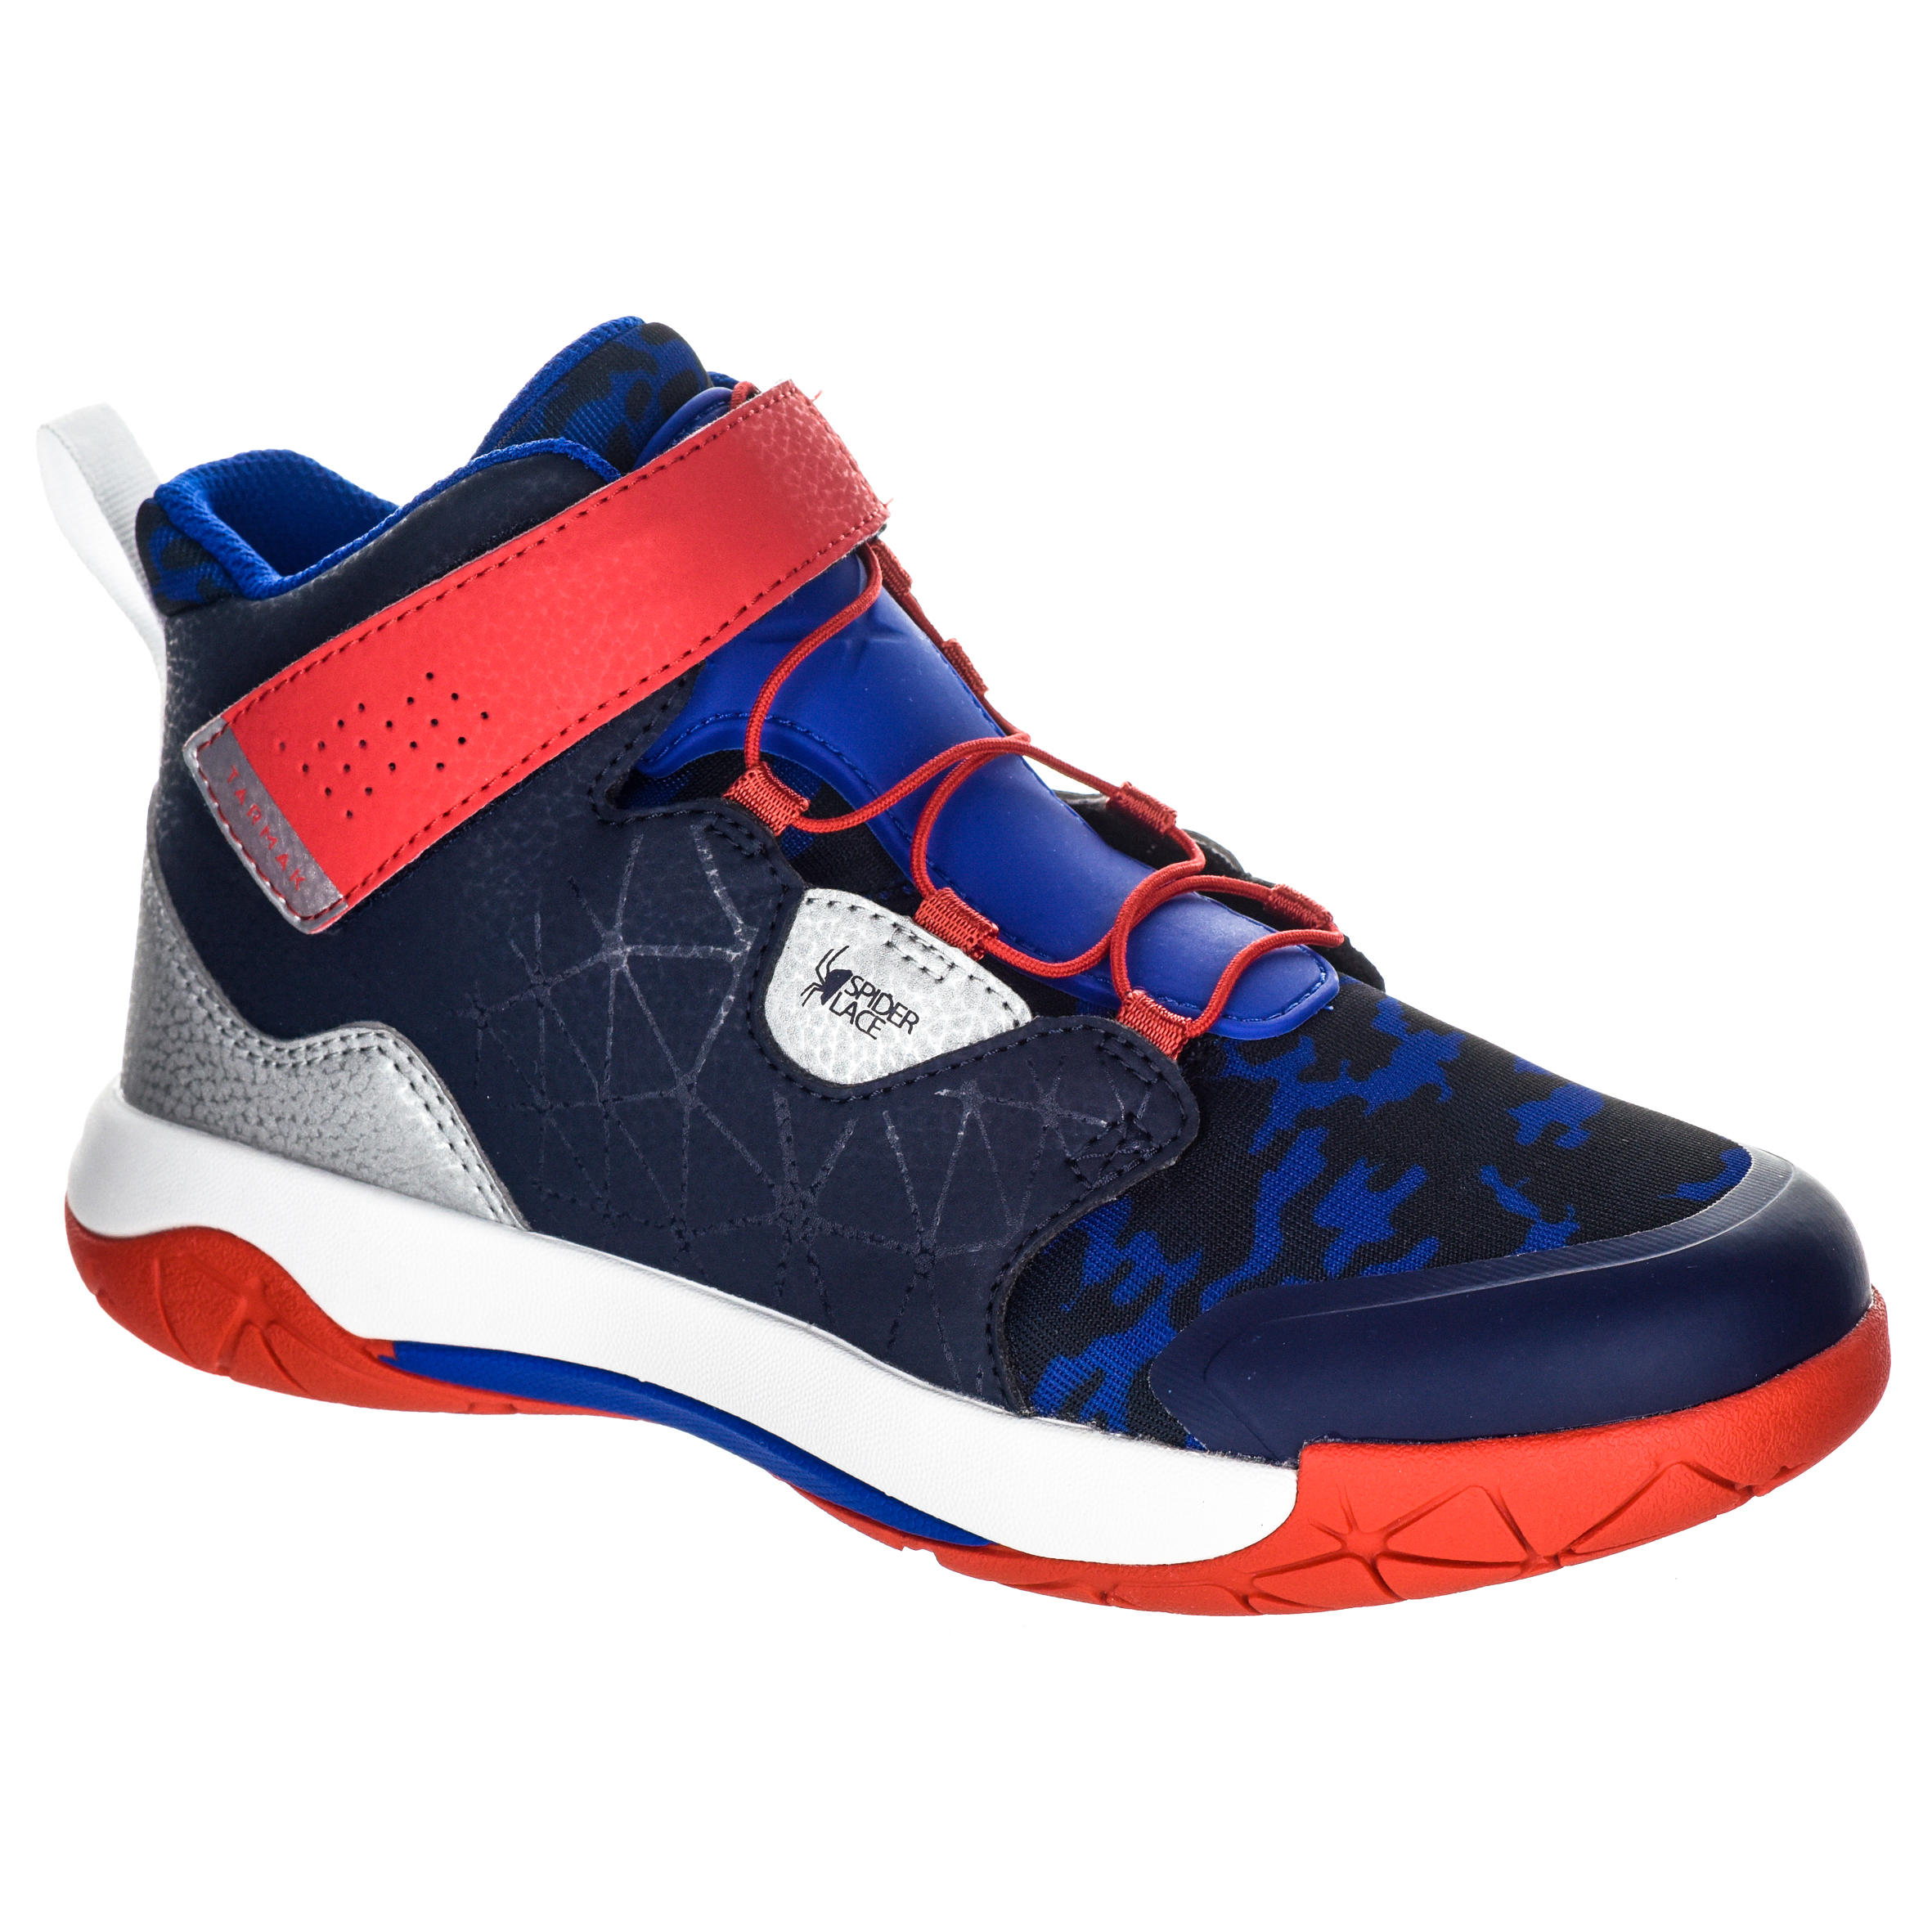 Spider Lace Boys' / Girls' Intermediate Basketball Shoes - Blue/Red